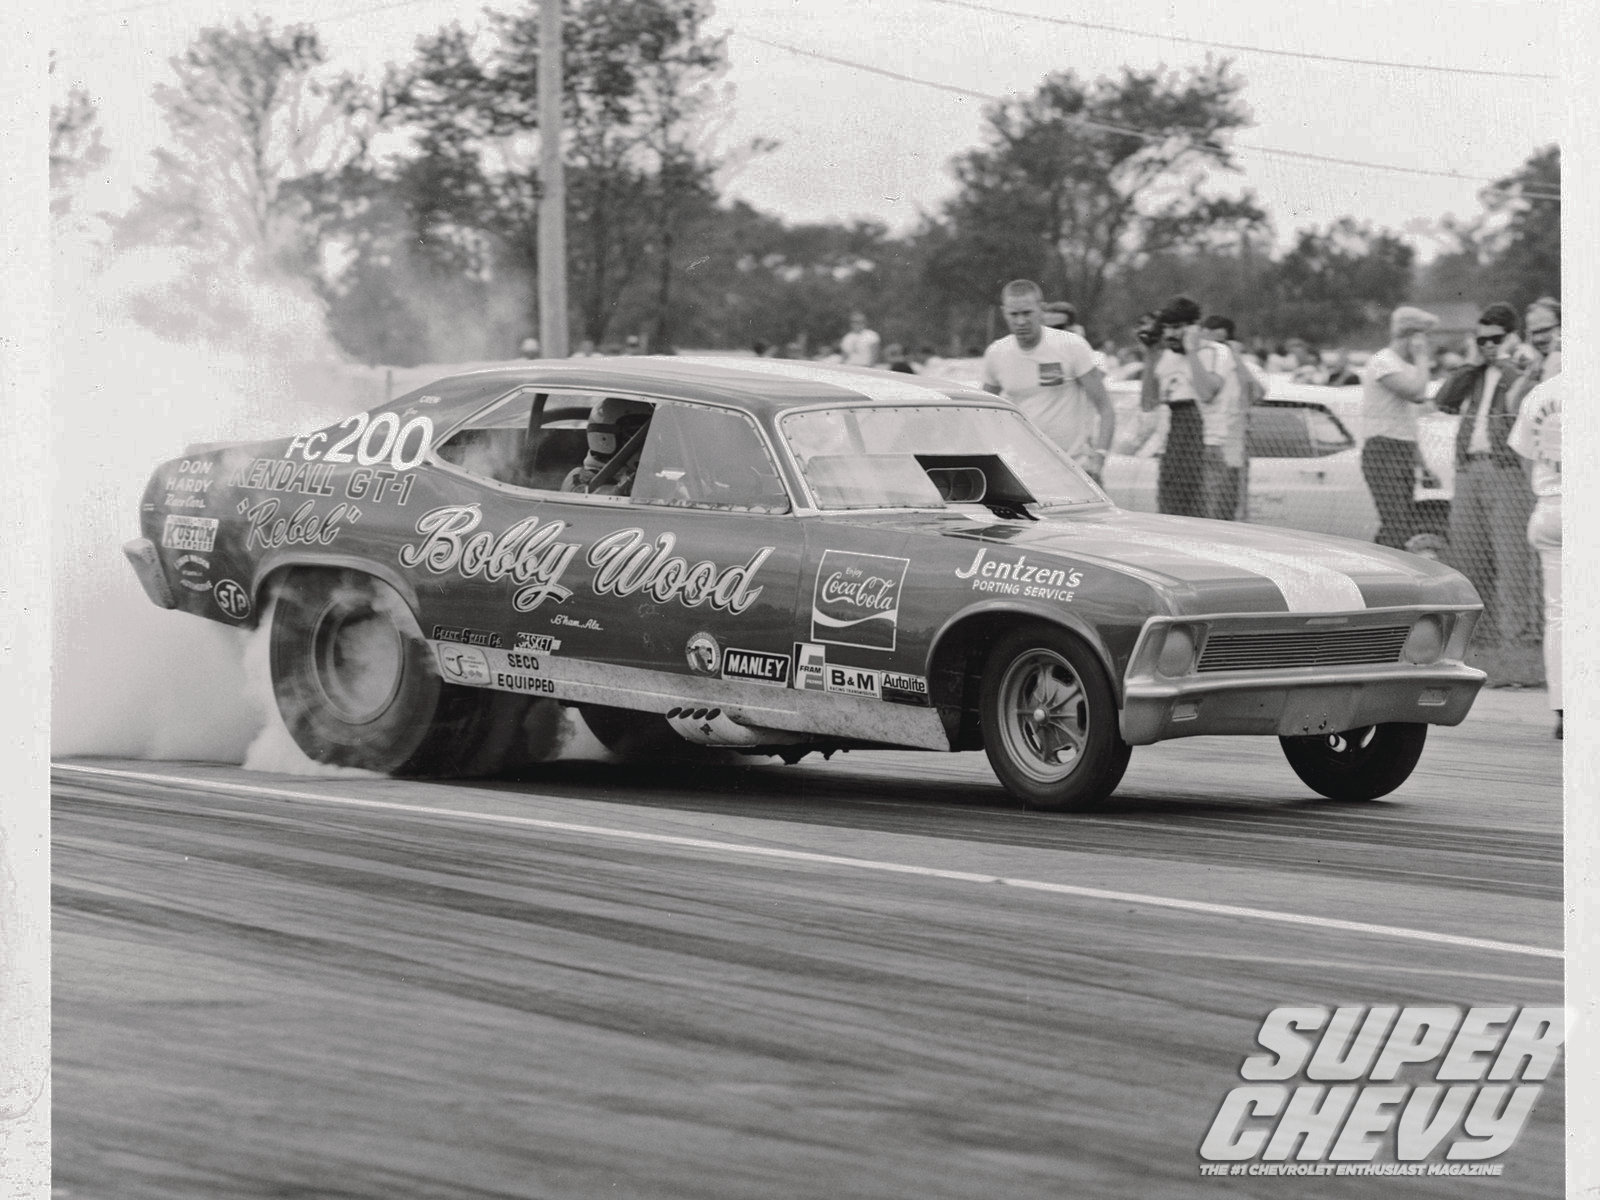 Sucp_1207_025_super_chevy_drag_racing_greats_part_3_